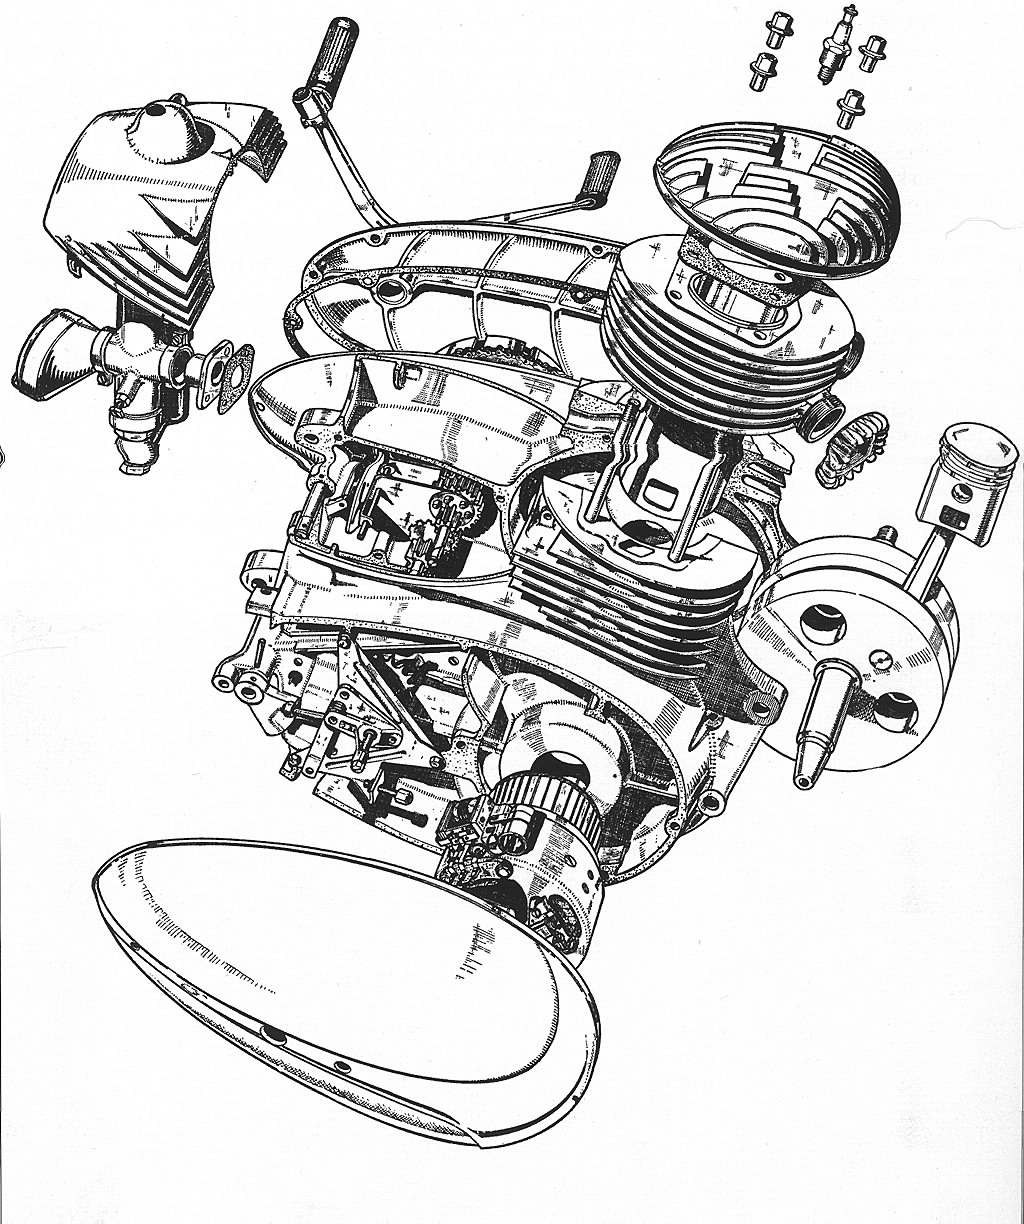 Dan S Motorcycle Shop Manuals